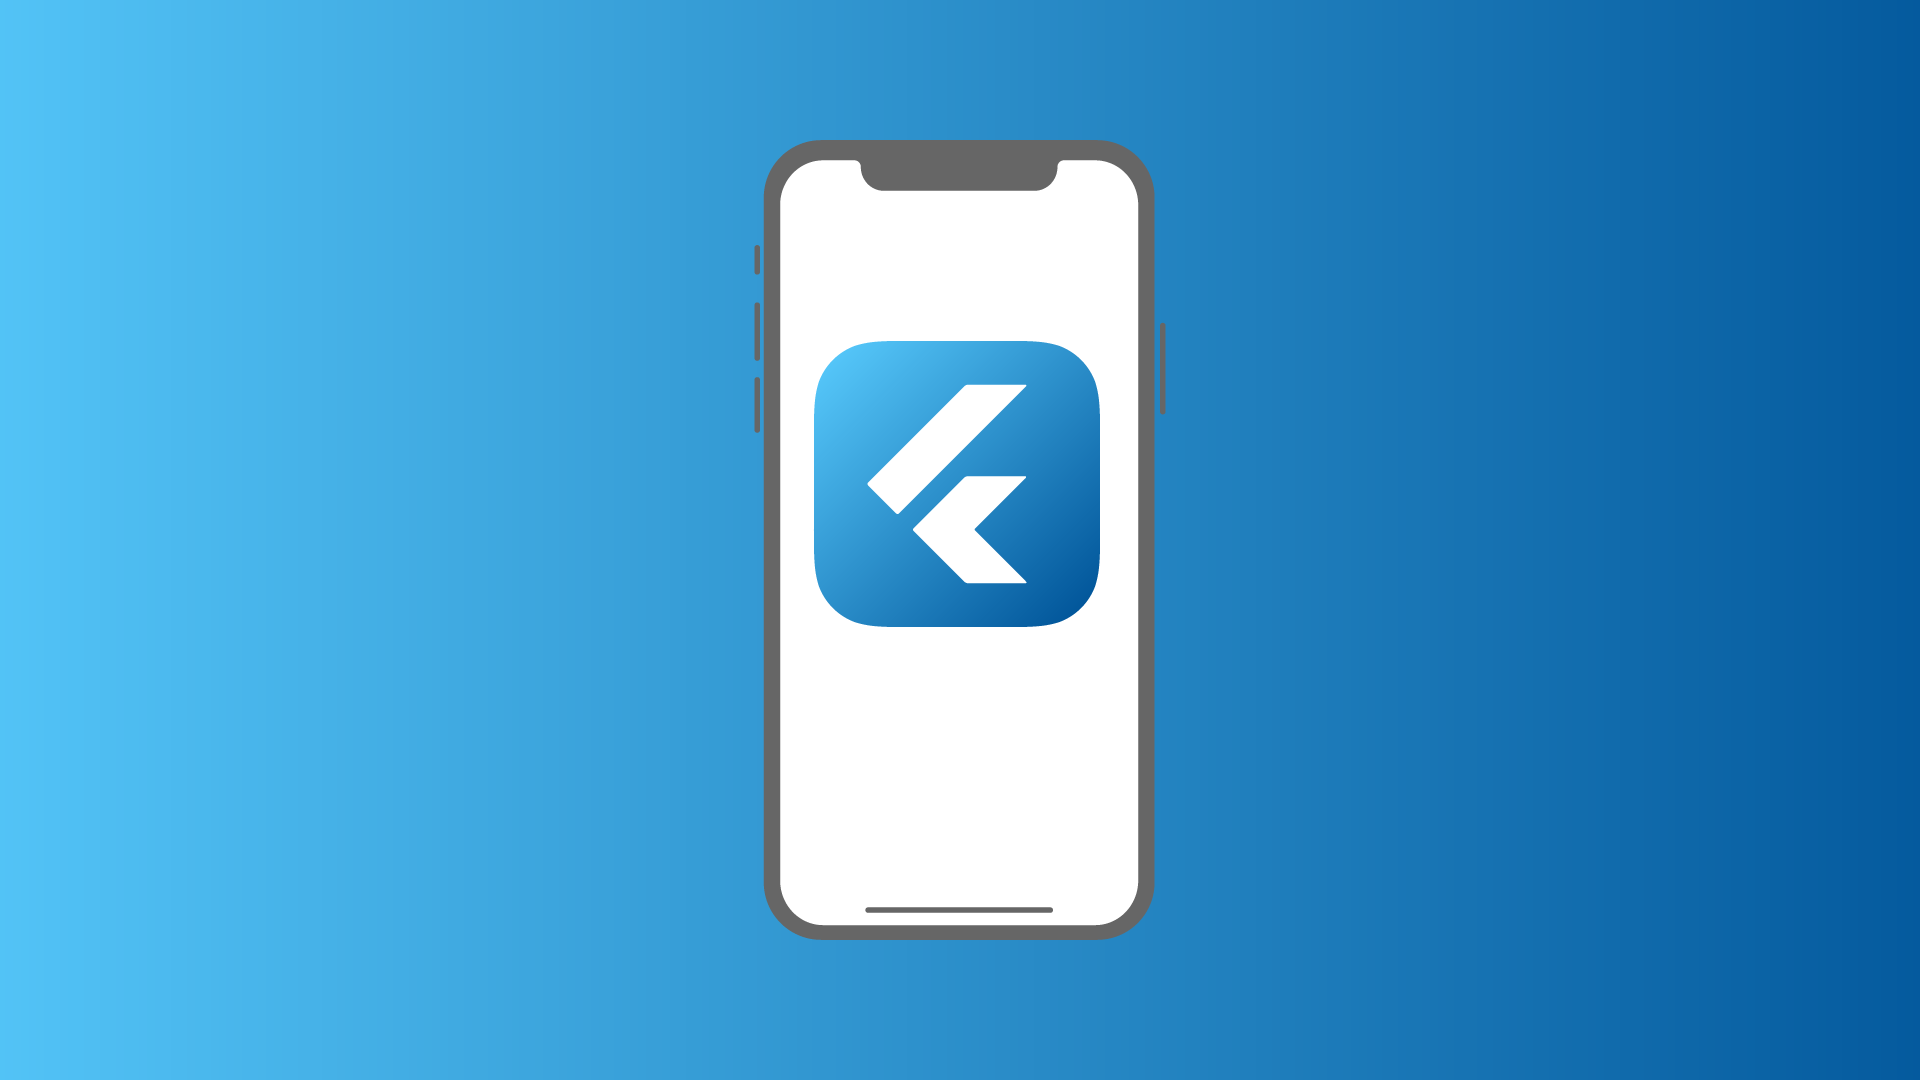 An iPhone X with a Flutter app icon